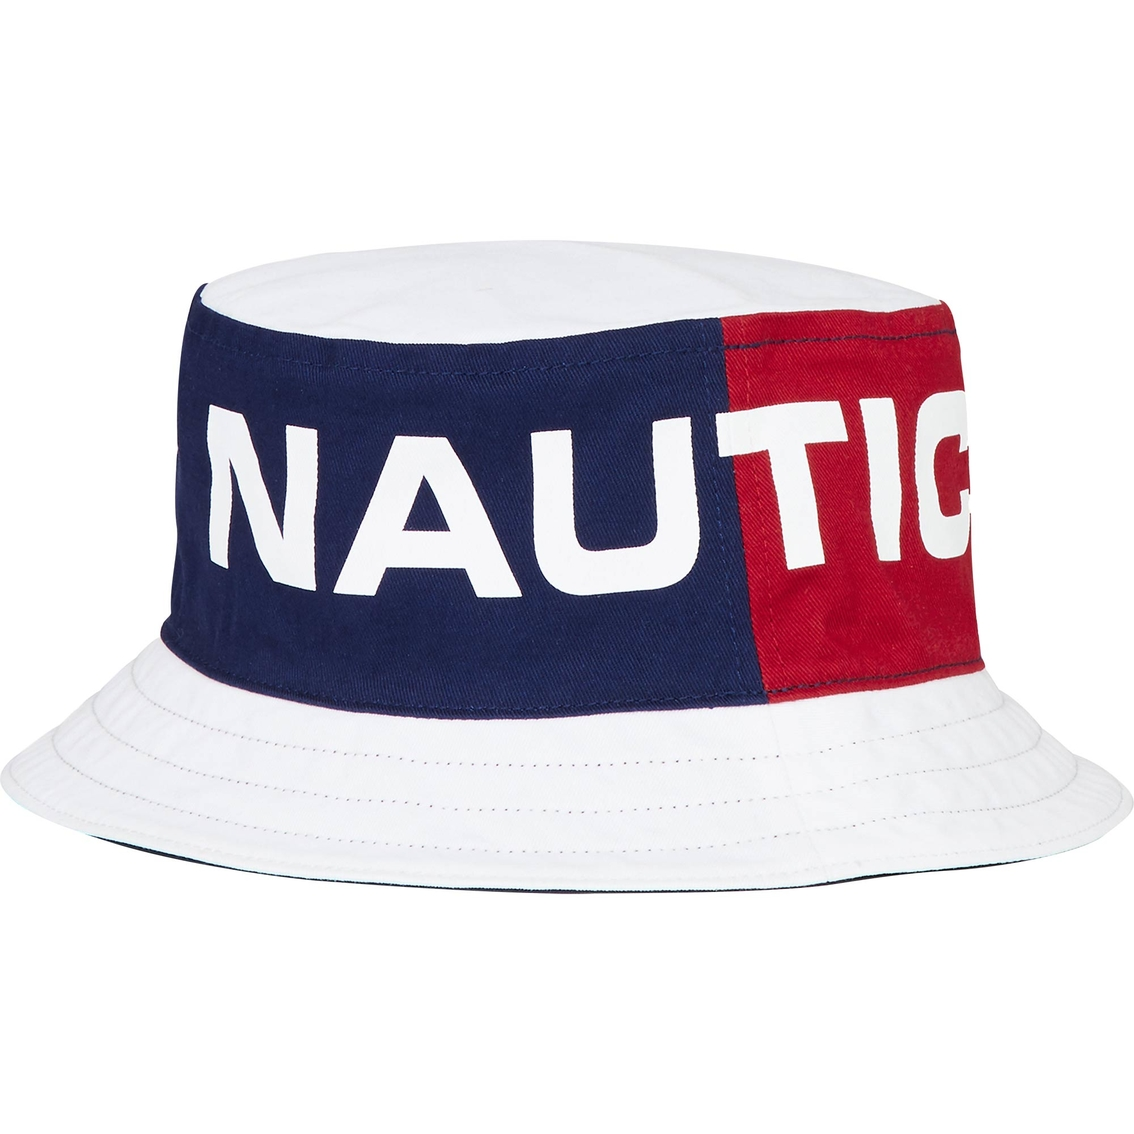 2d488d08b47 Nautica Large Print Reversible Bucket Hat